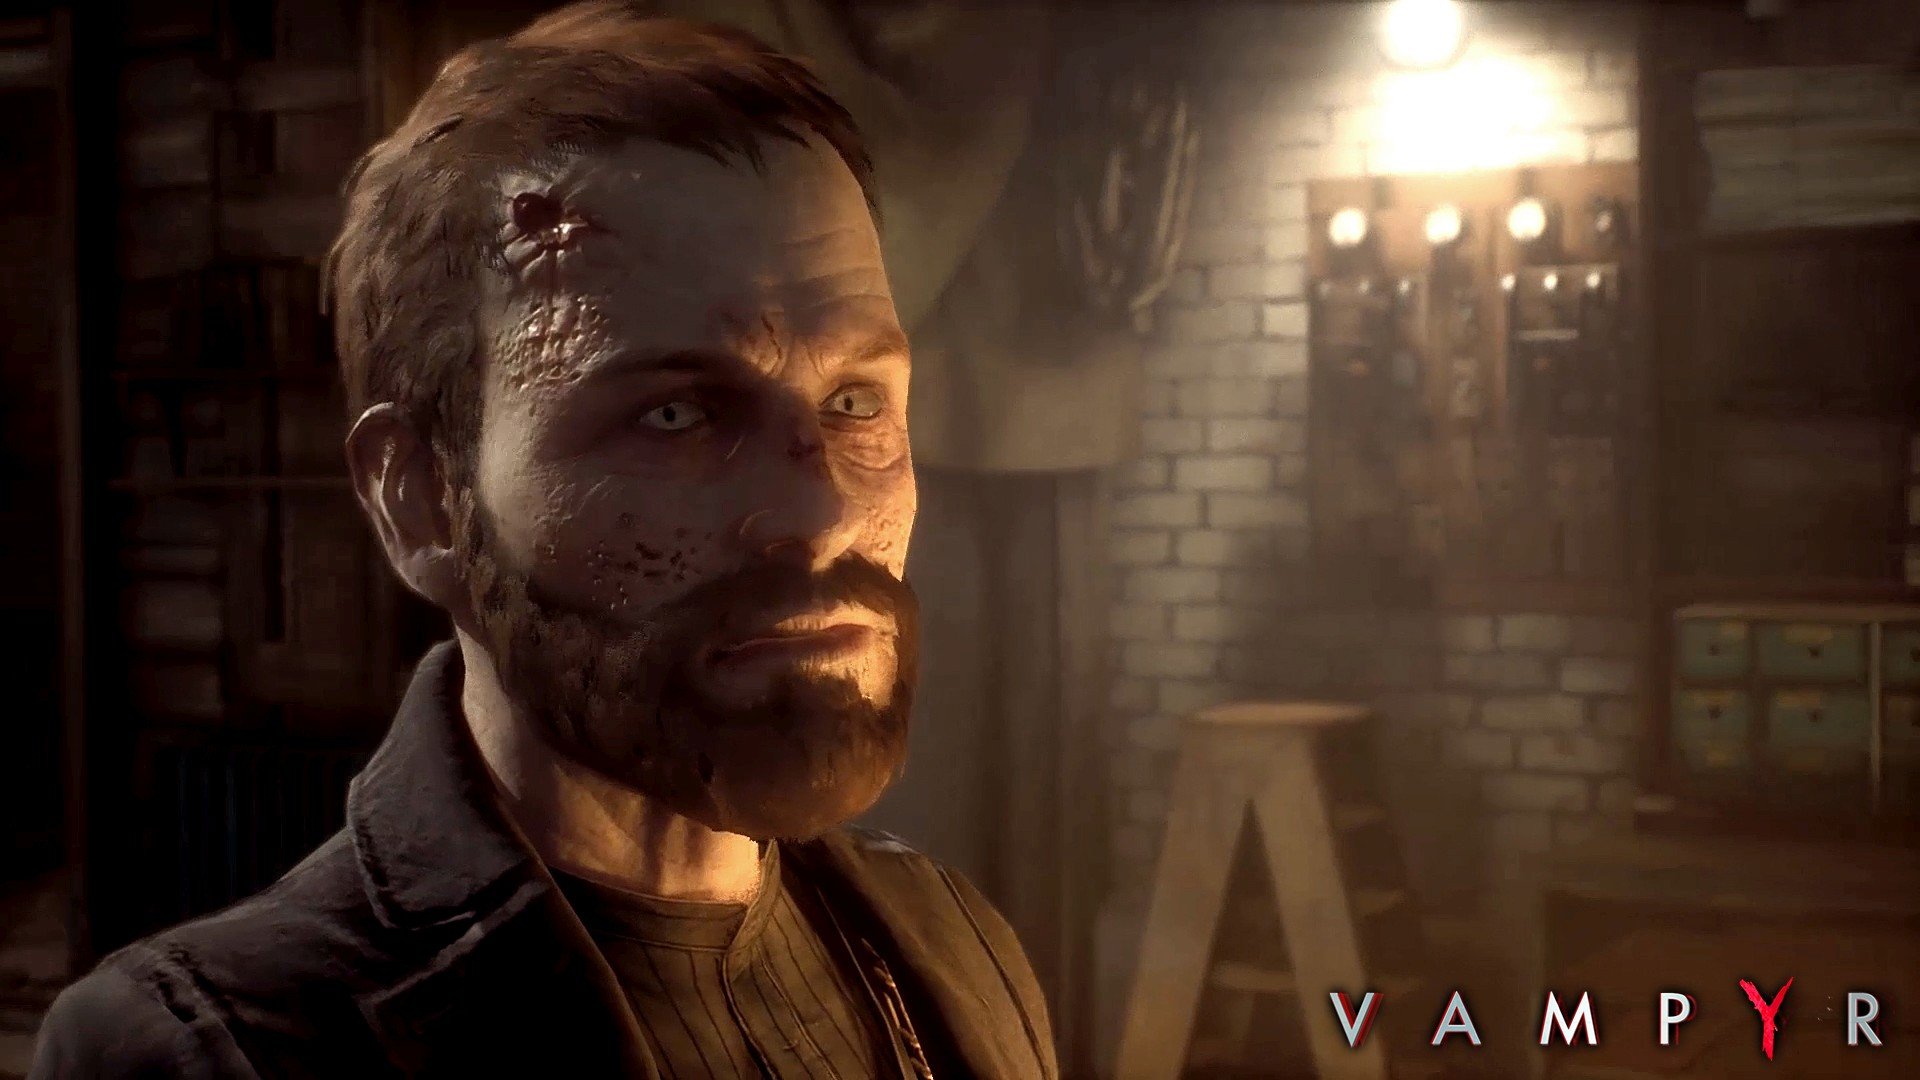 Vampyr-E3-Screenshot-pc-games.jpg